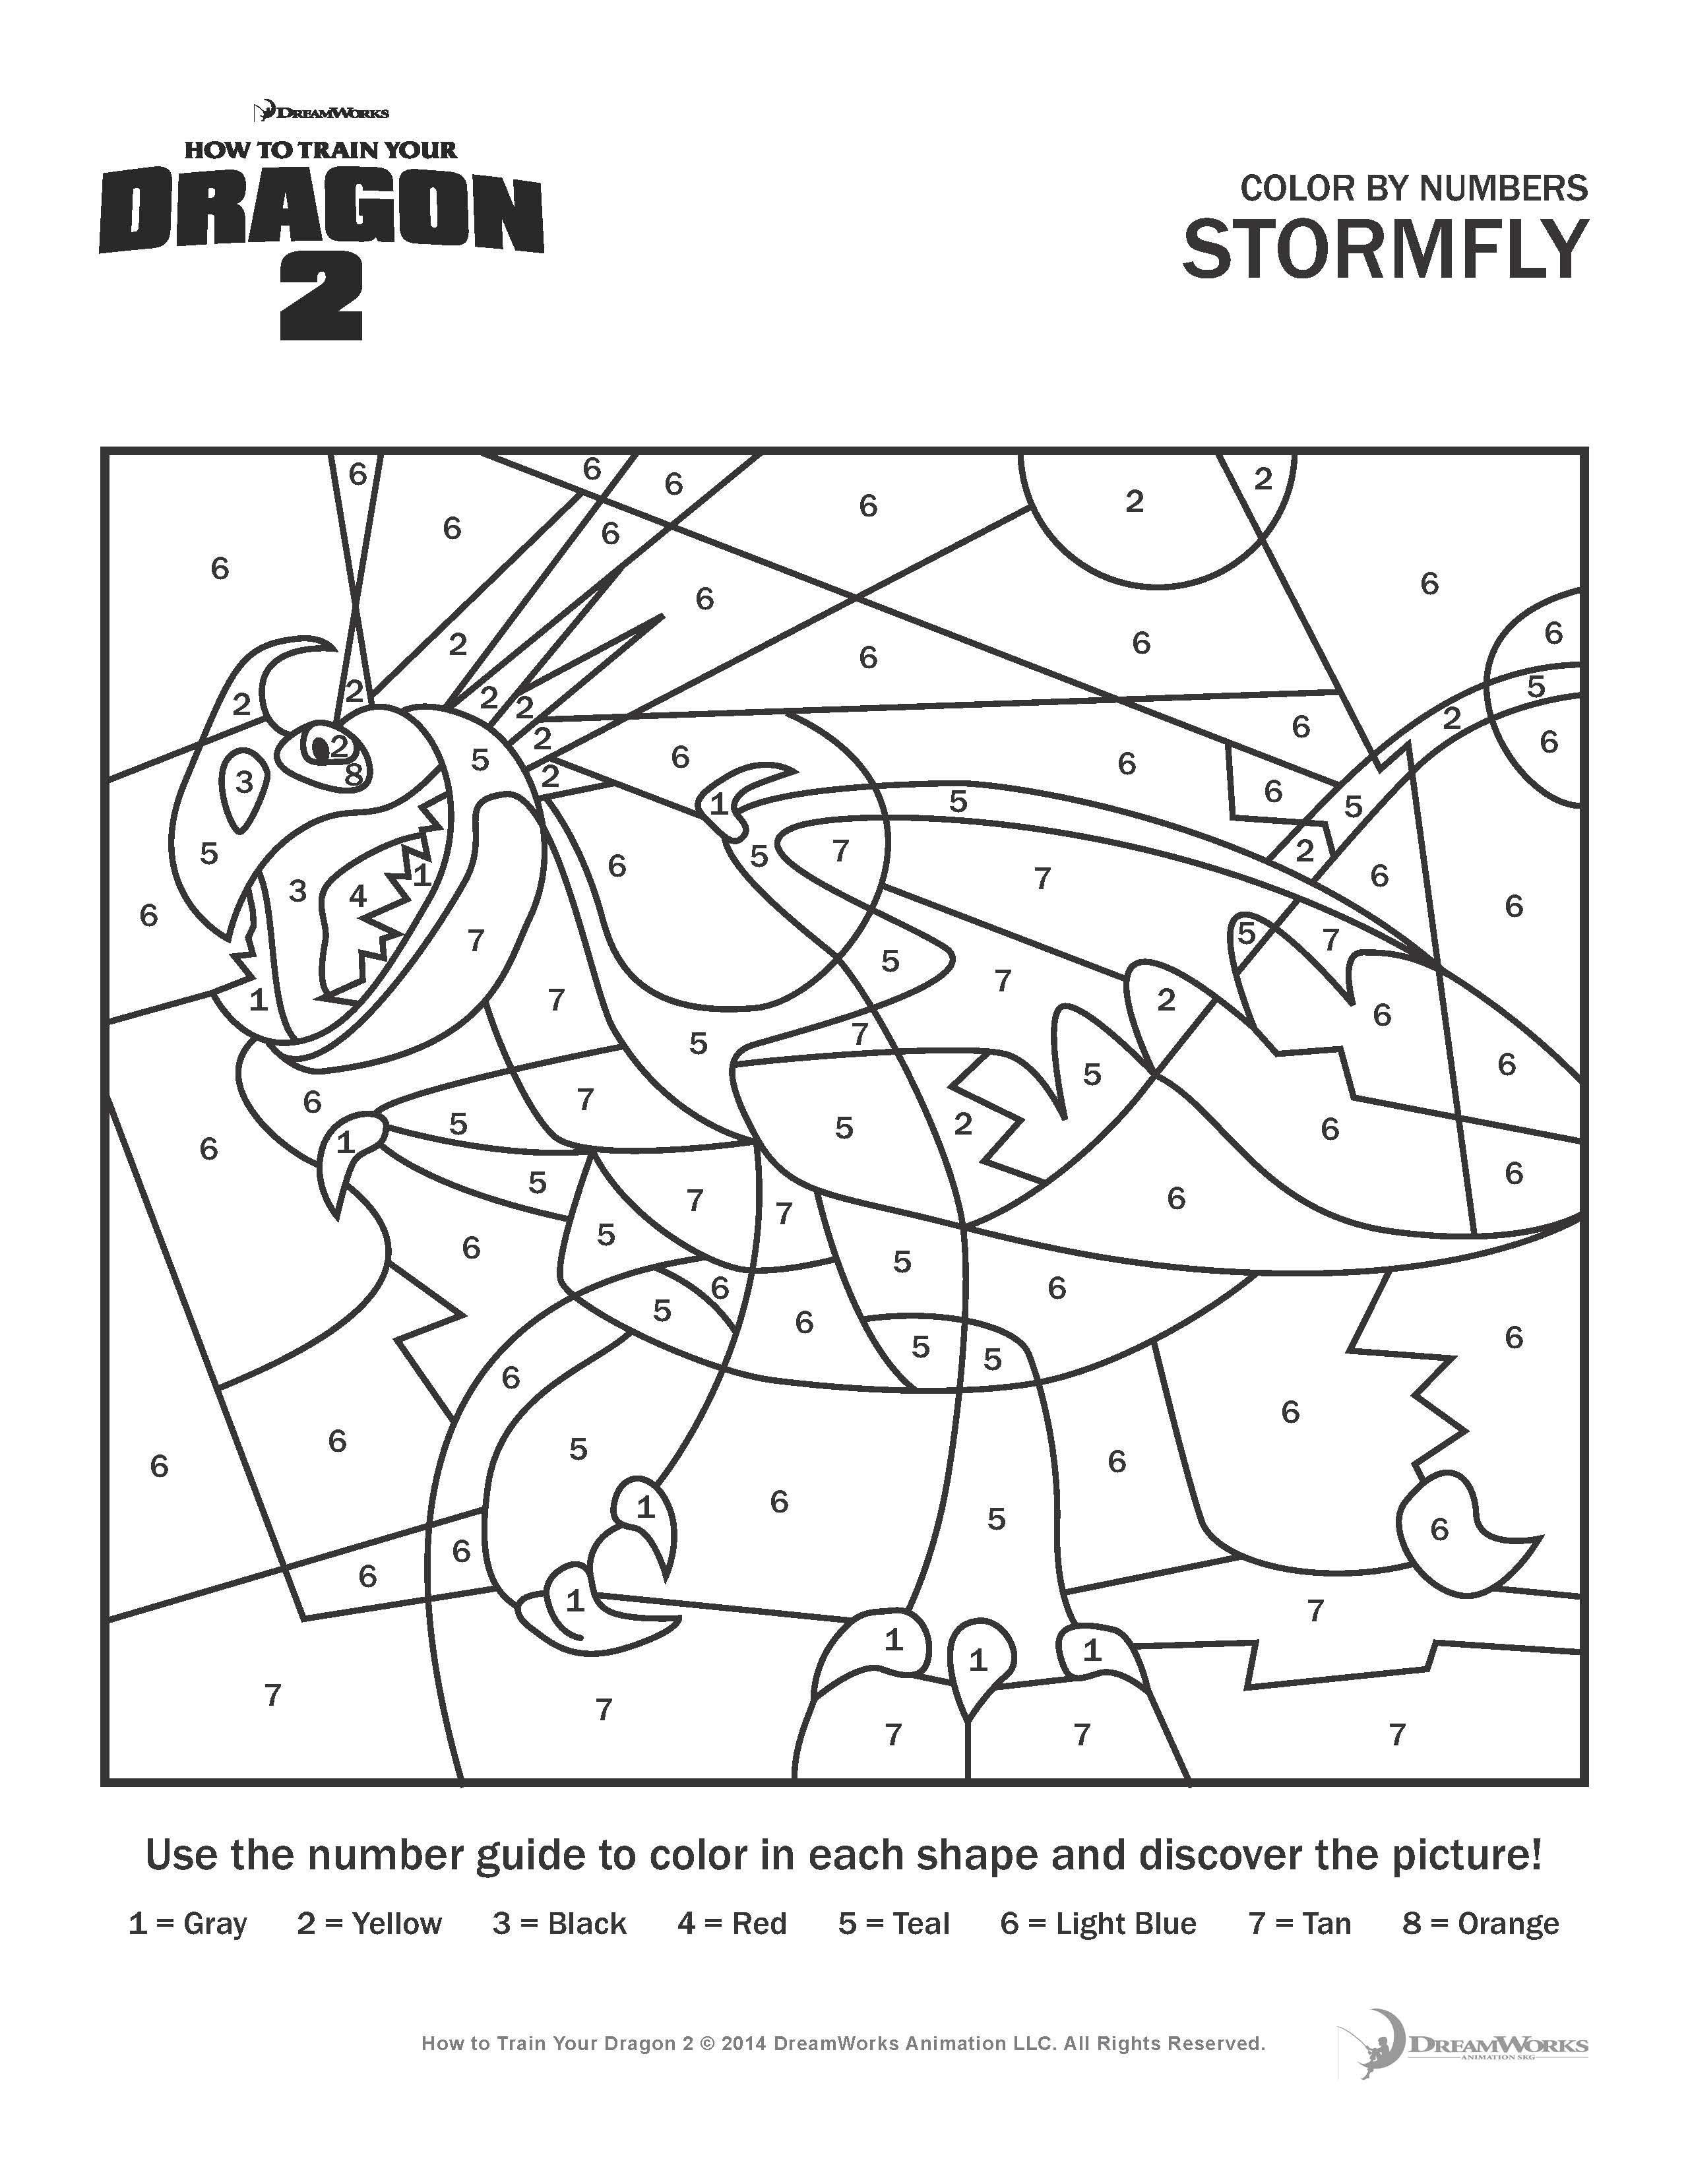 How to train your dragon 2 coloring pages and activity sheets for Free printable coloring pages of dragons